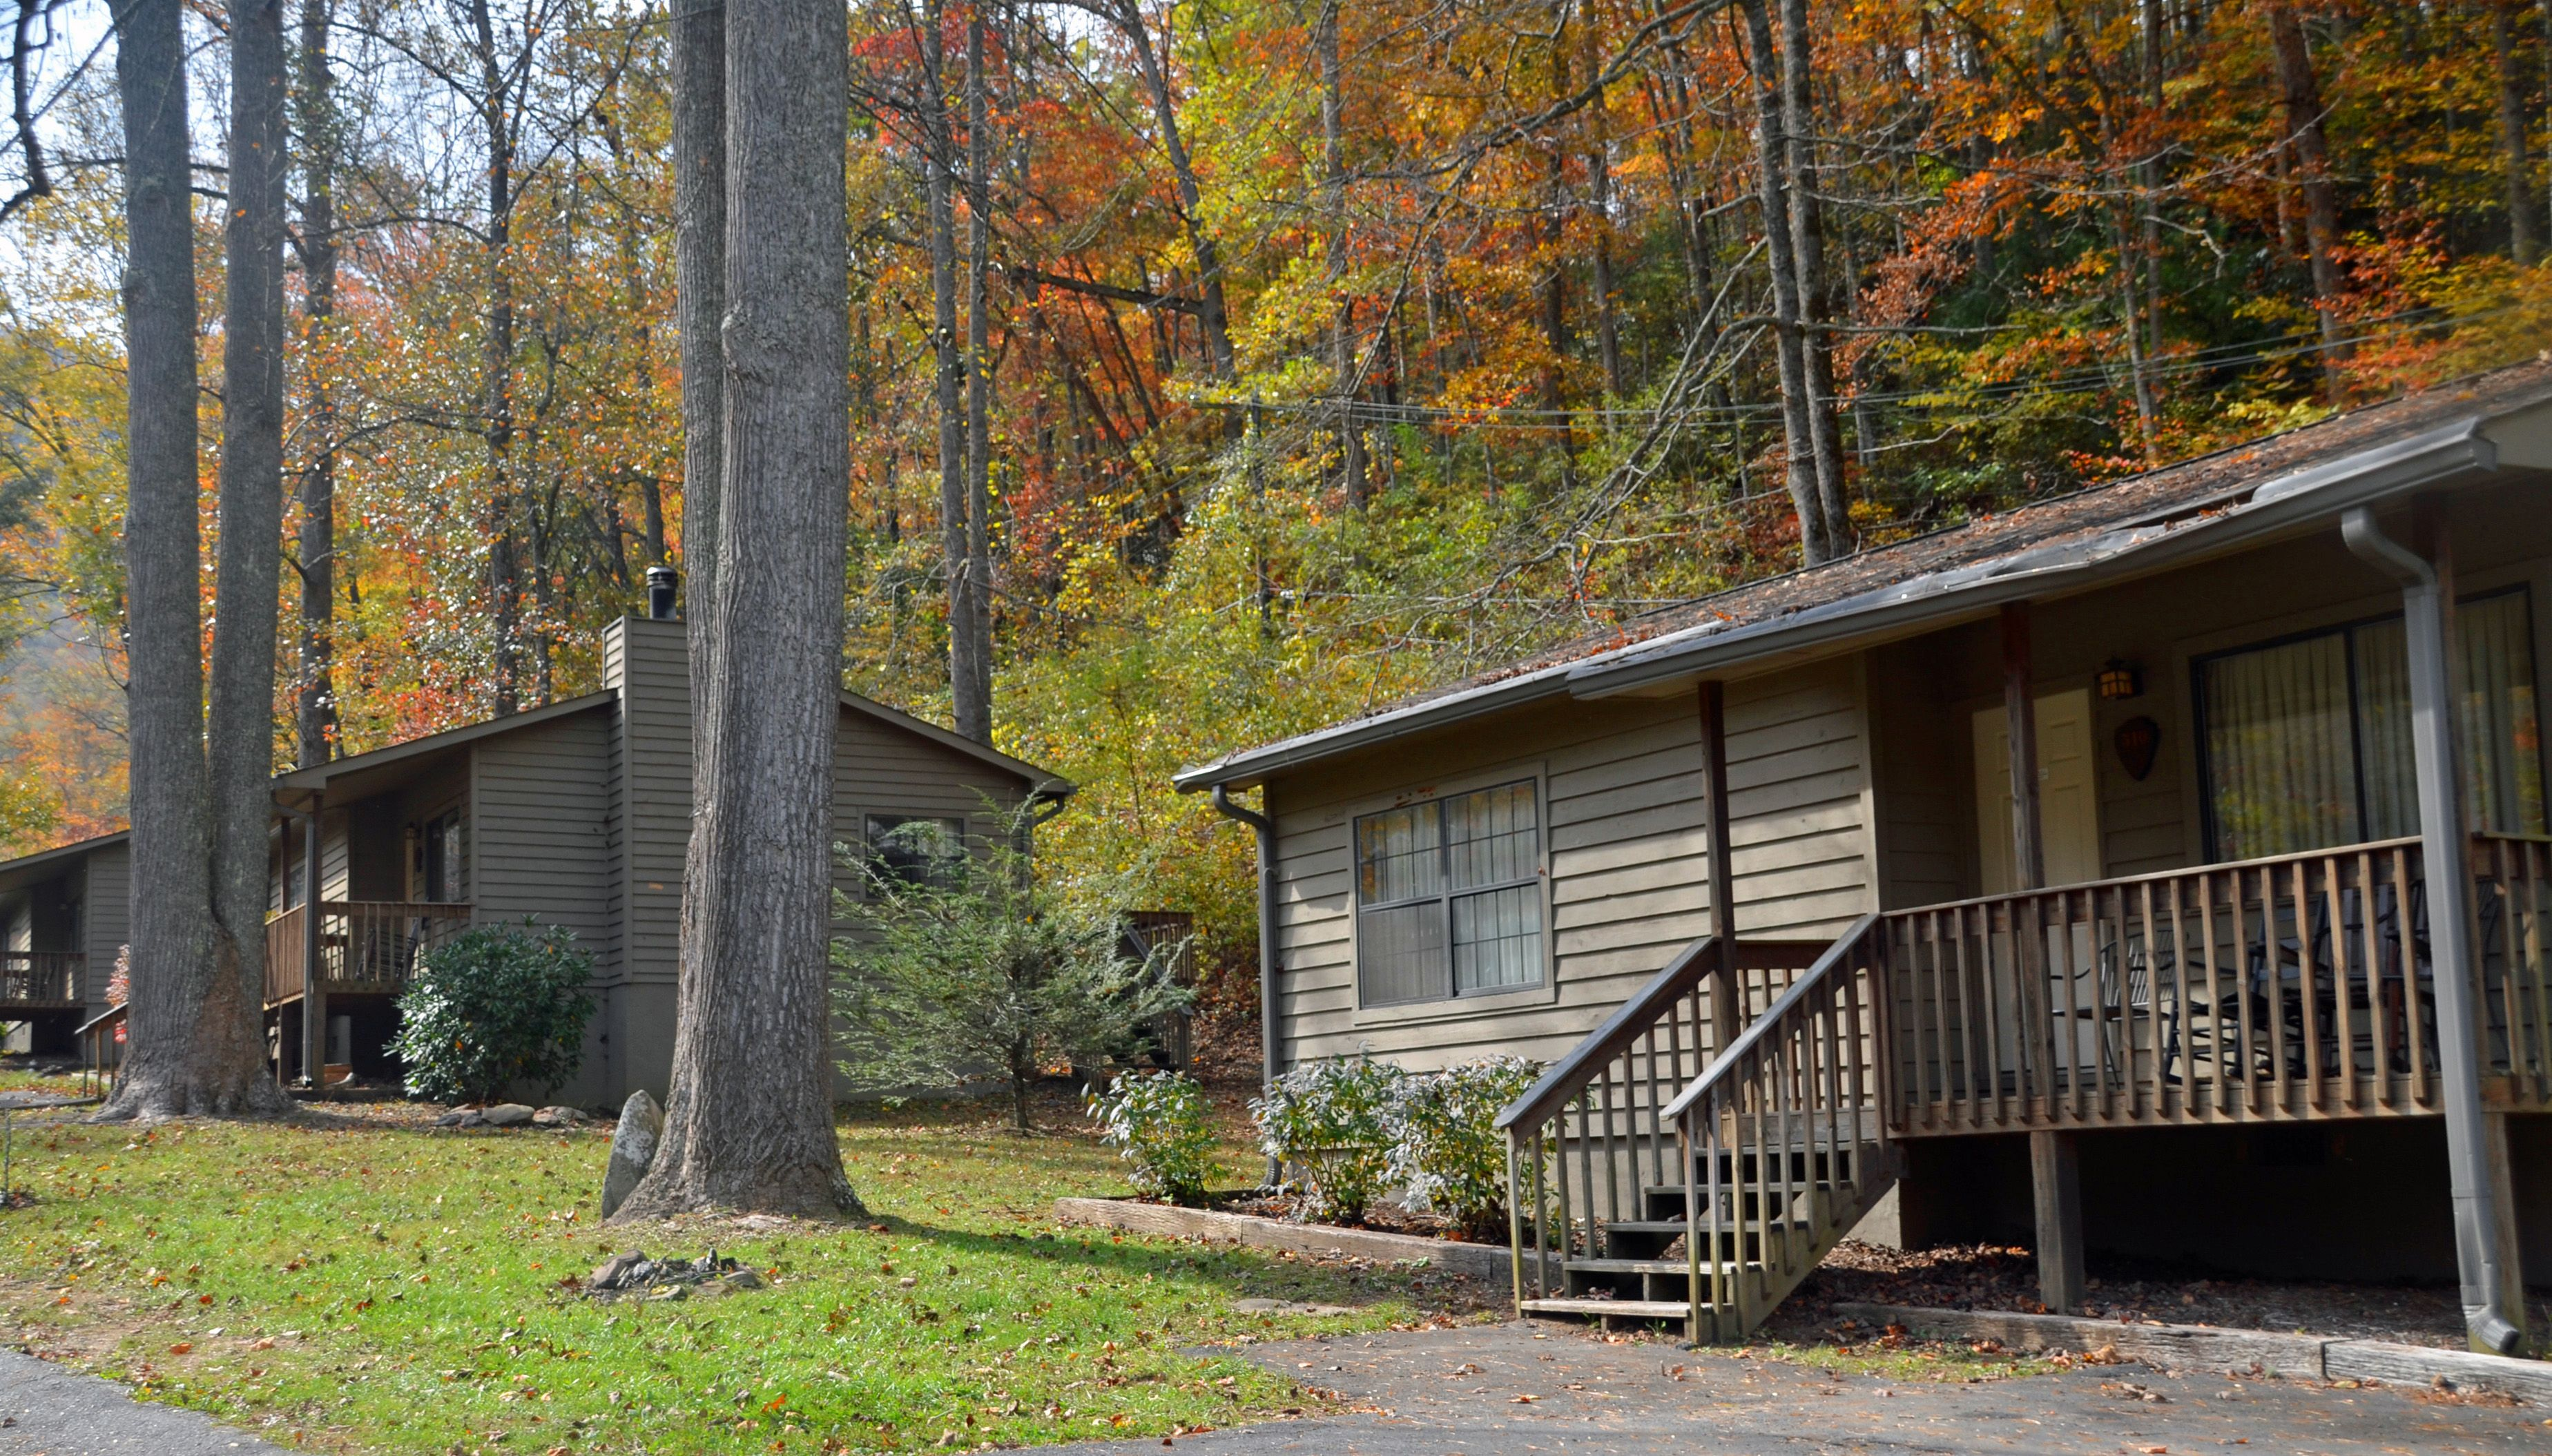 rent cabin smokey valley rentals resort tn rental mountain cabins for preserve htm wearsvalleycabins in wears romance